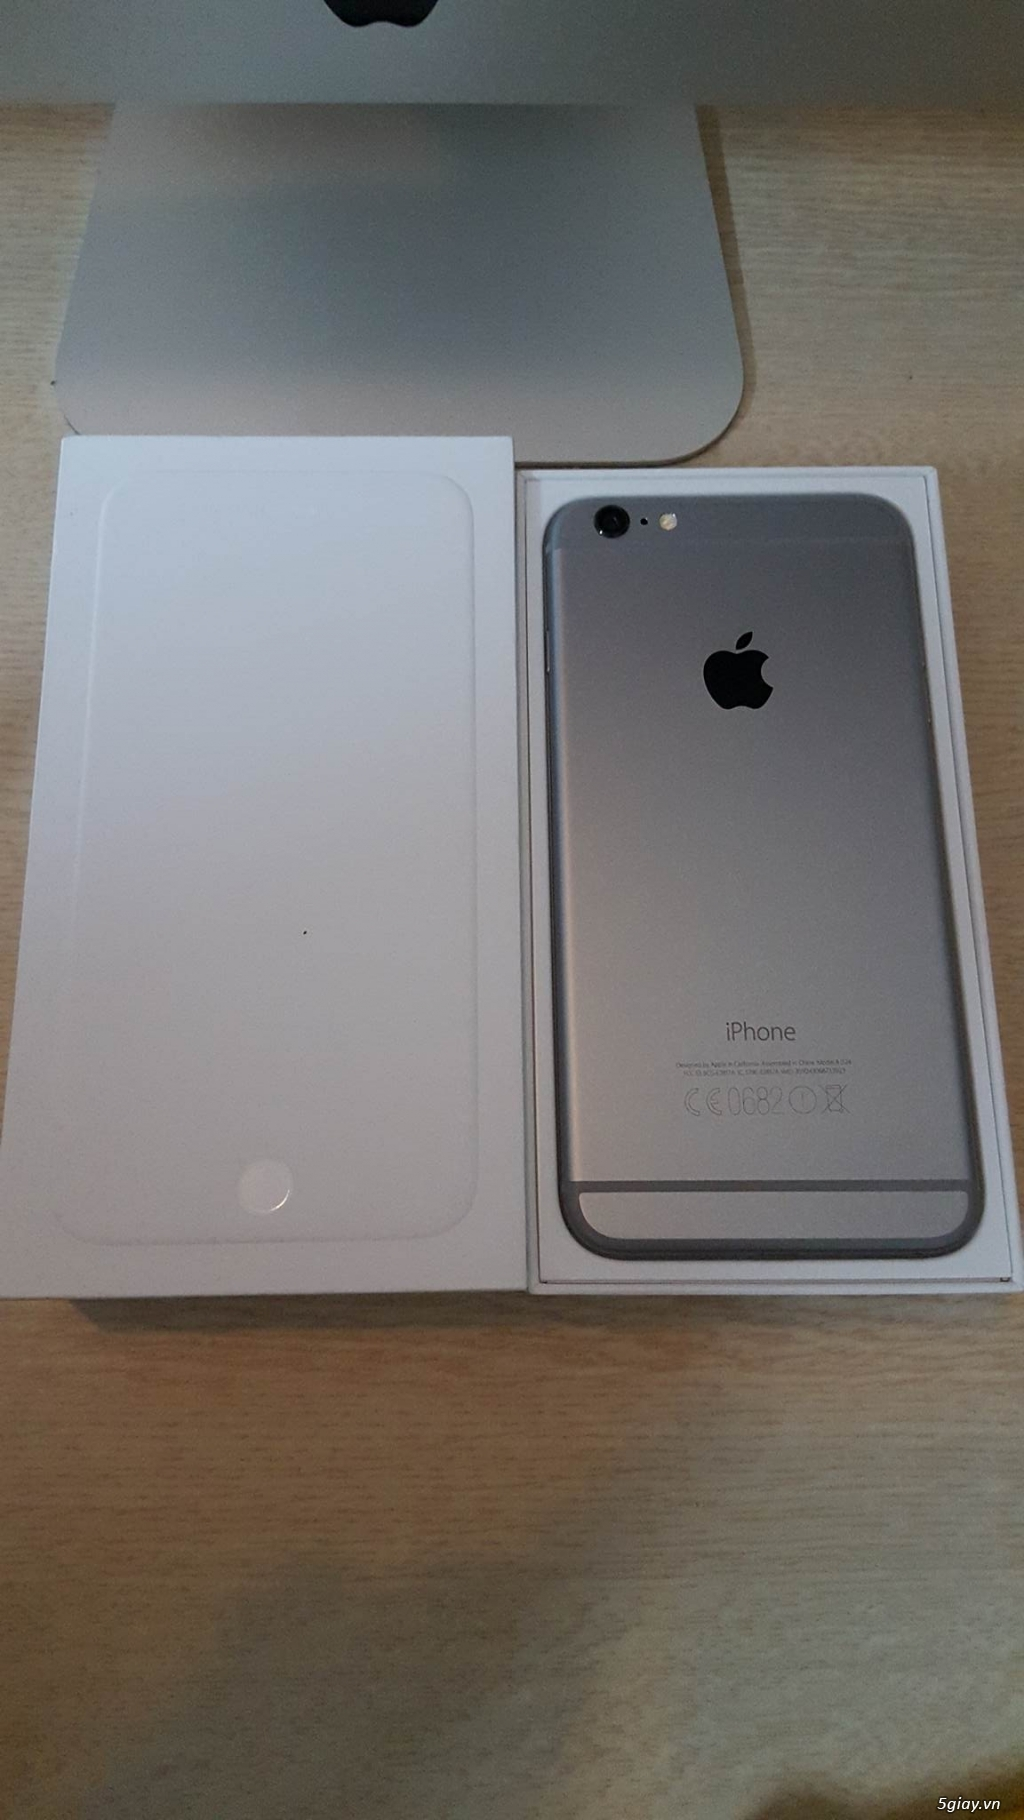 IPHONE 6PLUS 16GB GRAY QUỐC TẾ - 2